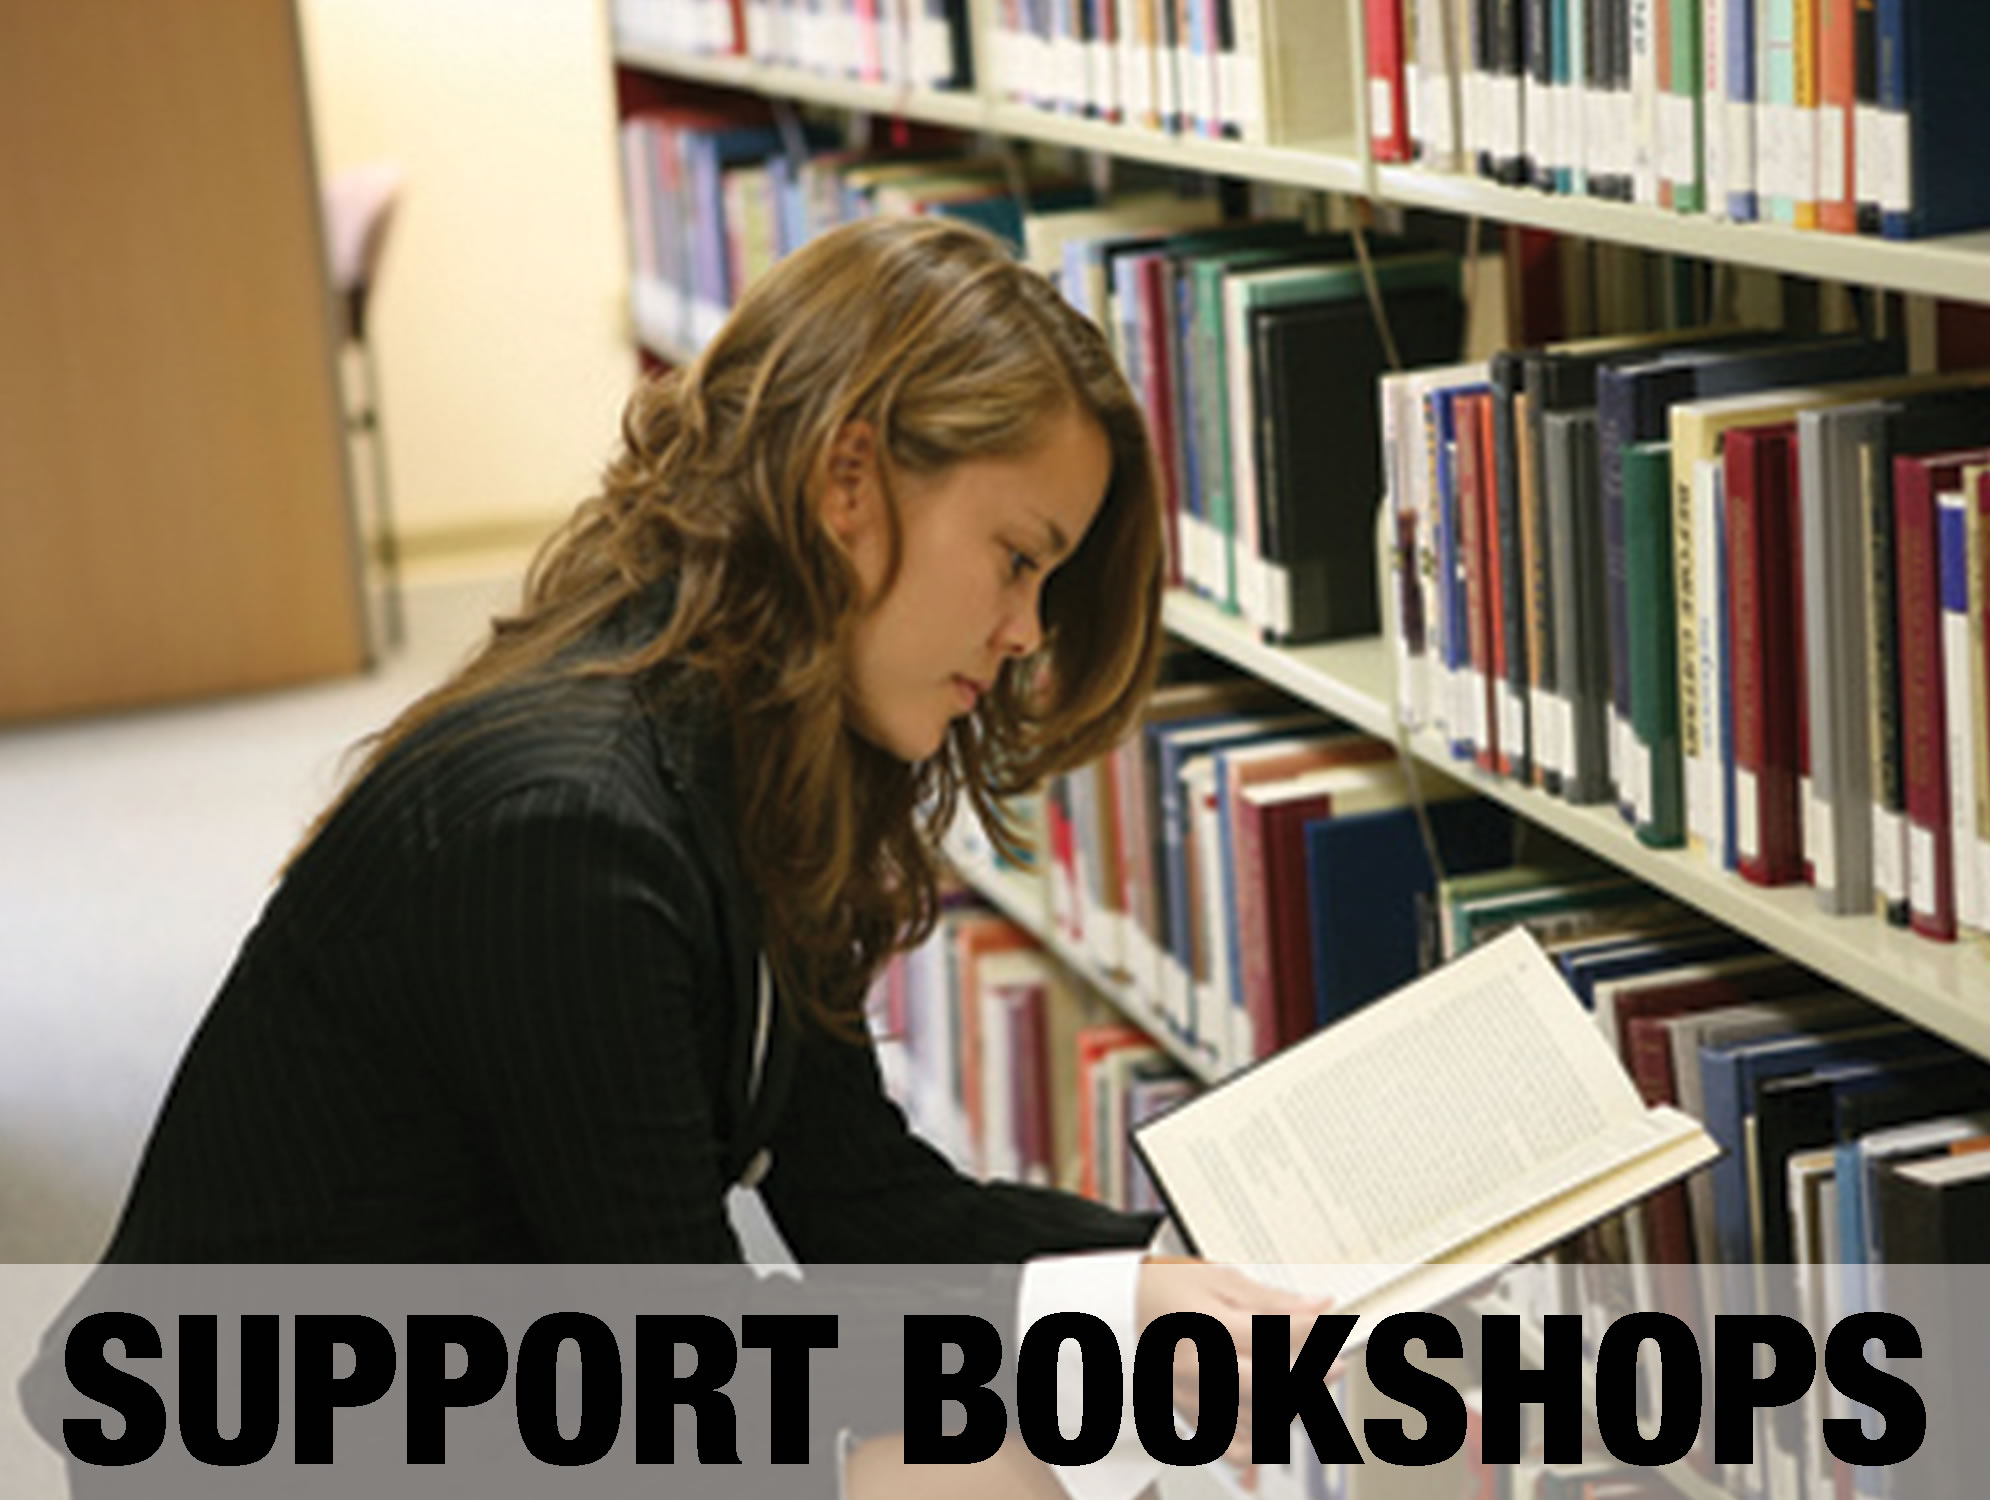 Support_bookshops